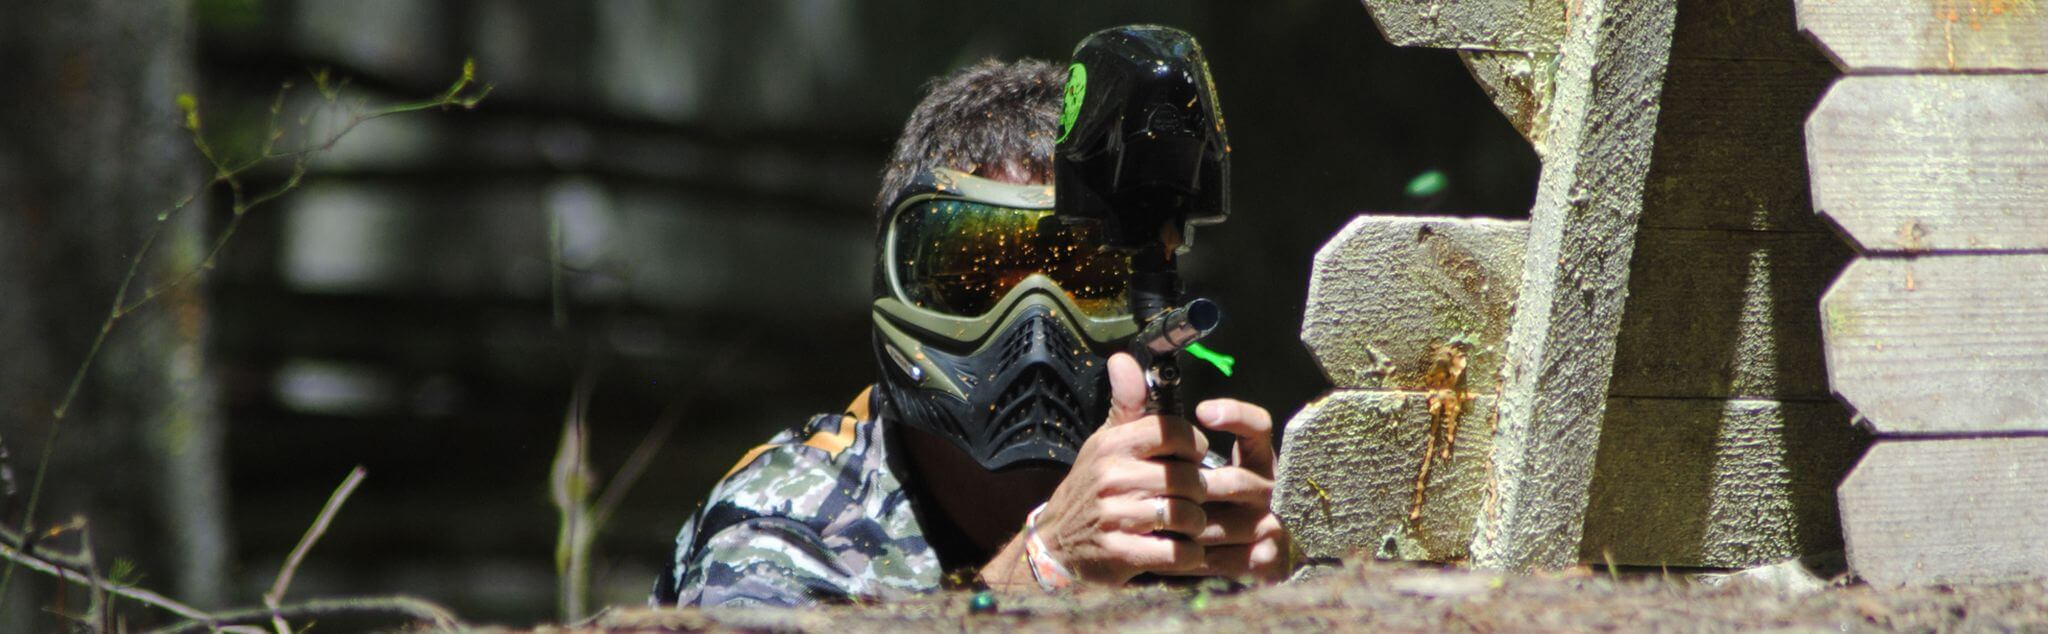 Paintball in Santander